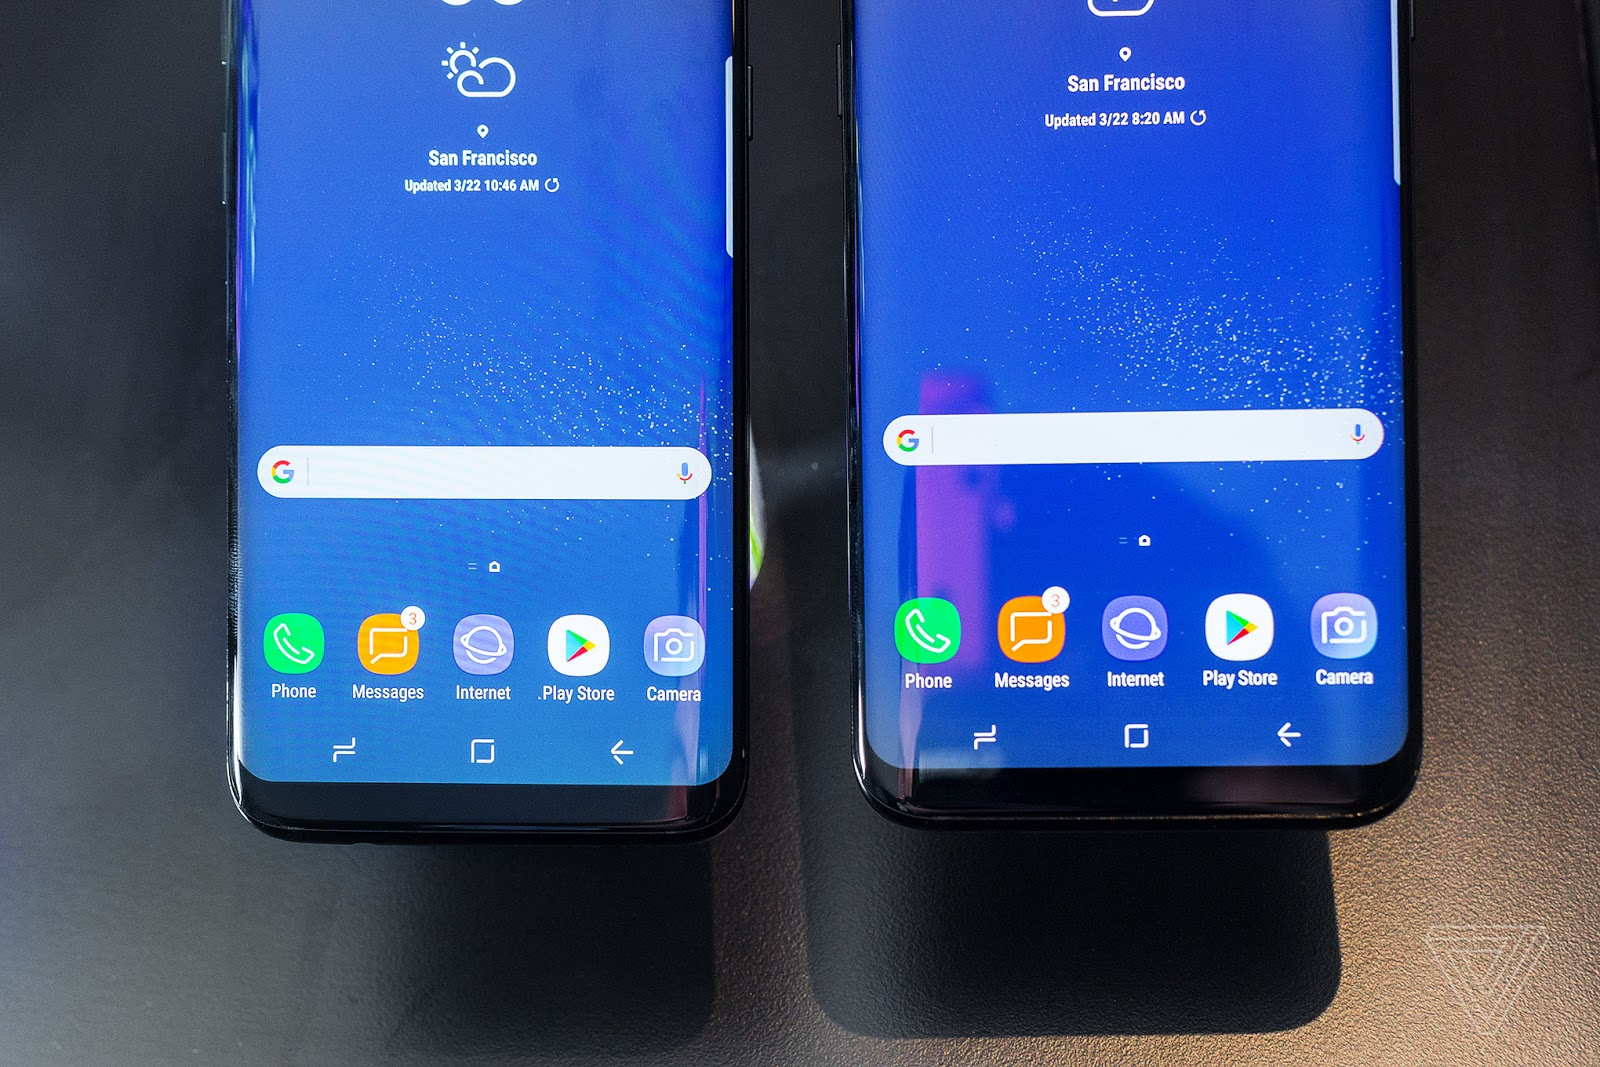 Samsung adds home screen rotation update to Galaxy S8, S8+ and Note 8